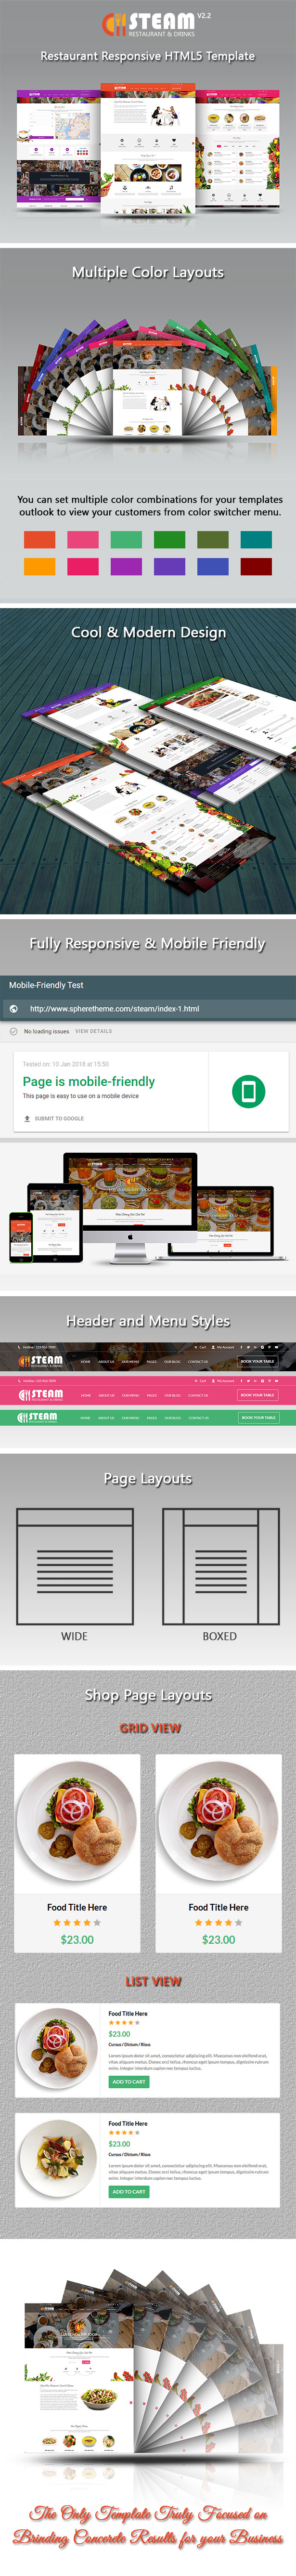 Prefect for RESTAURANT, Bakery, Cafe, Bar, Catering, food business and for personal chef portfolio website